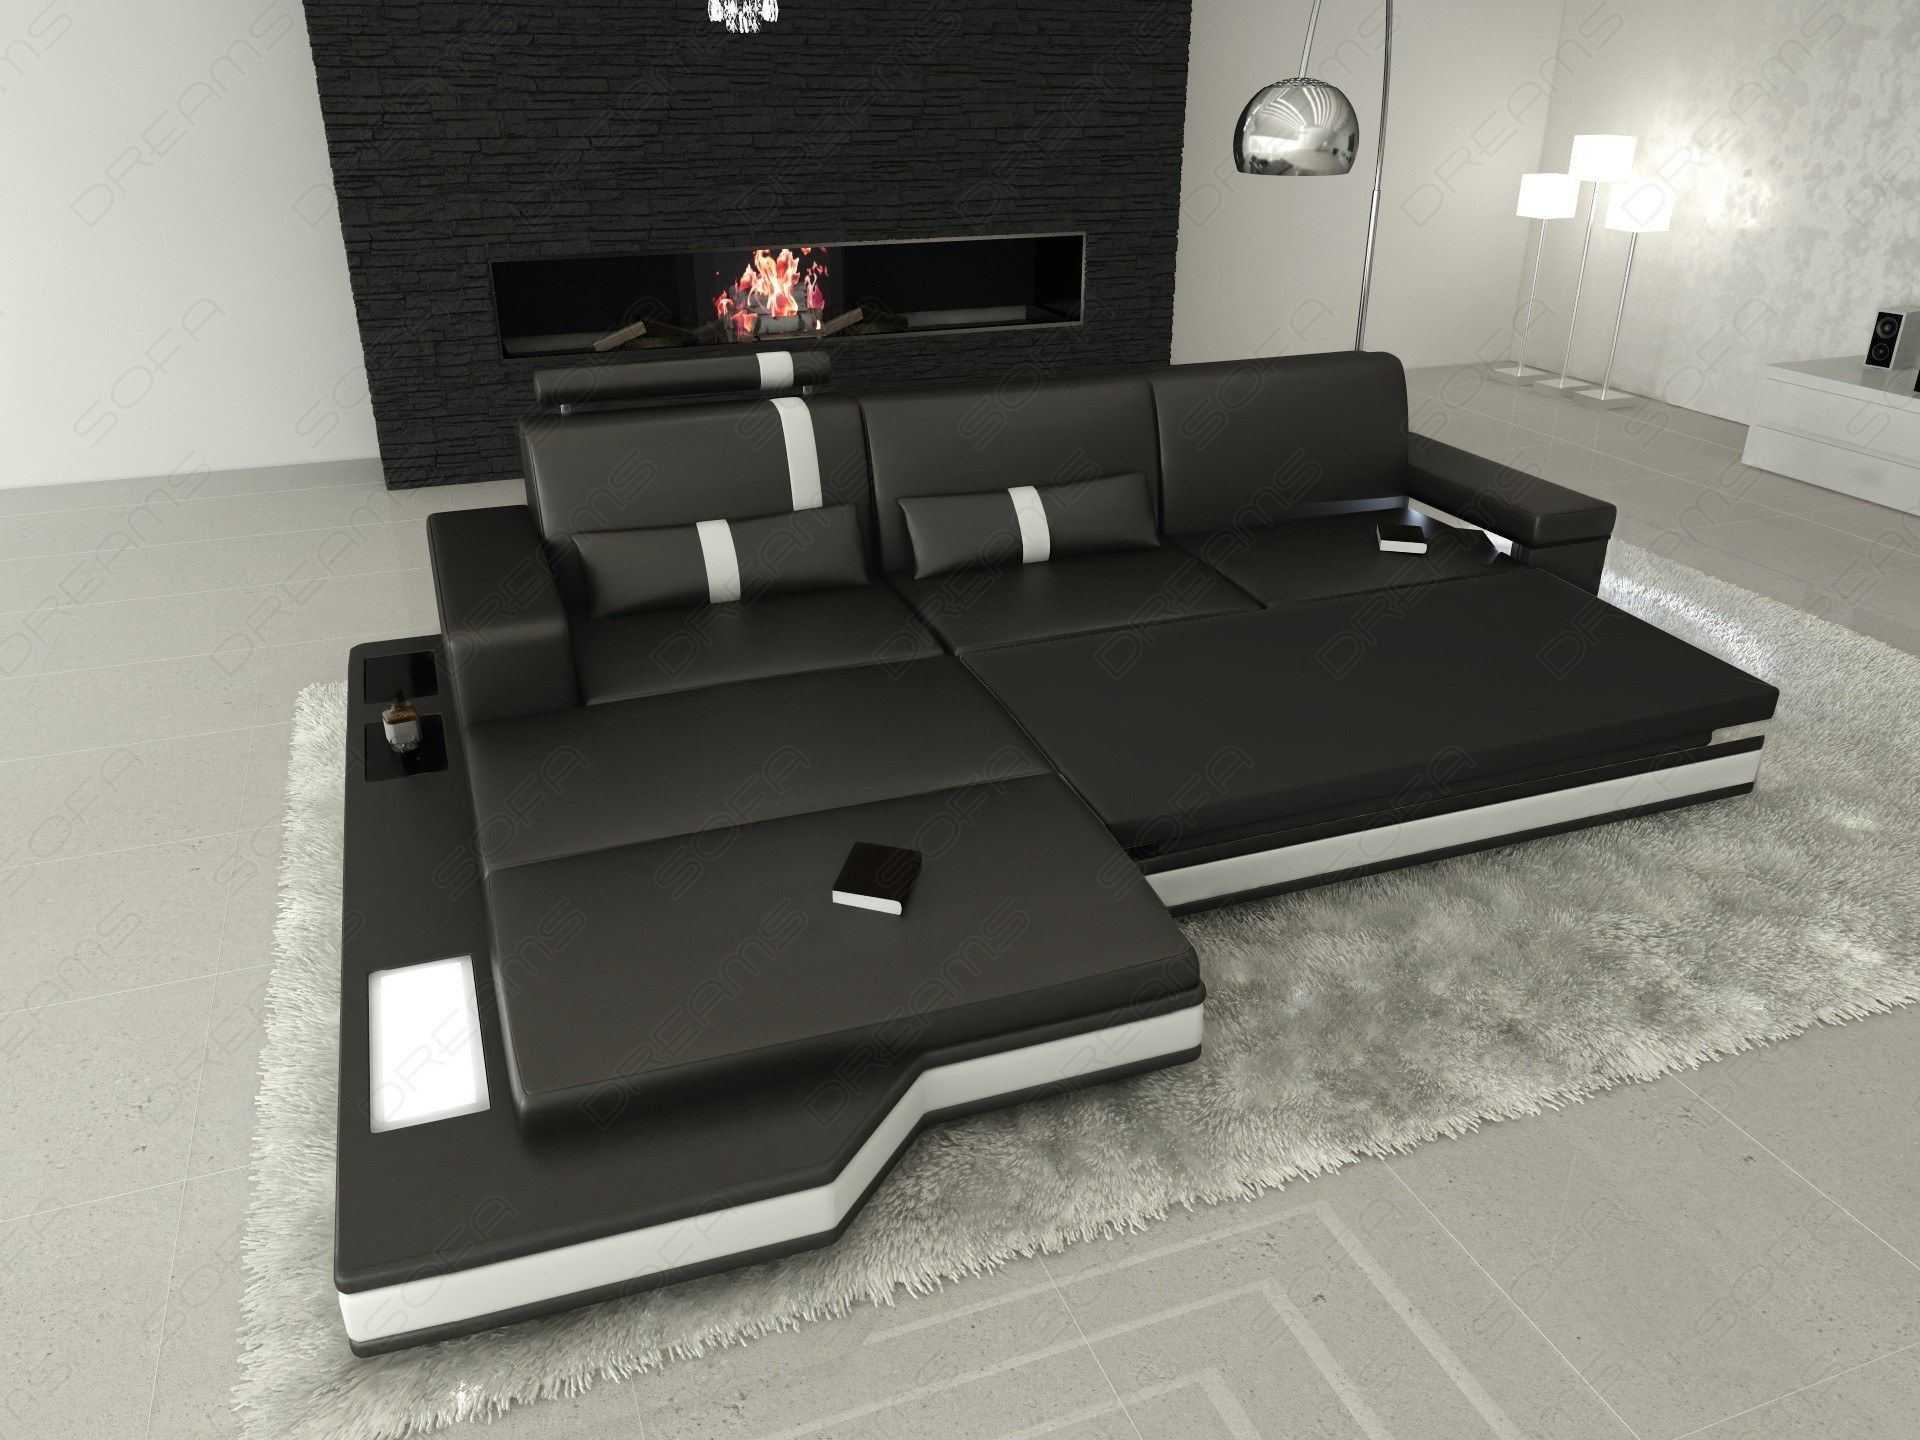 Big Sofa Mit Schlaffunktion Sofas & Ledersofa | Ledersofa Messana L-form Led - Sofas